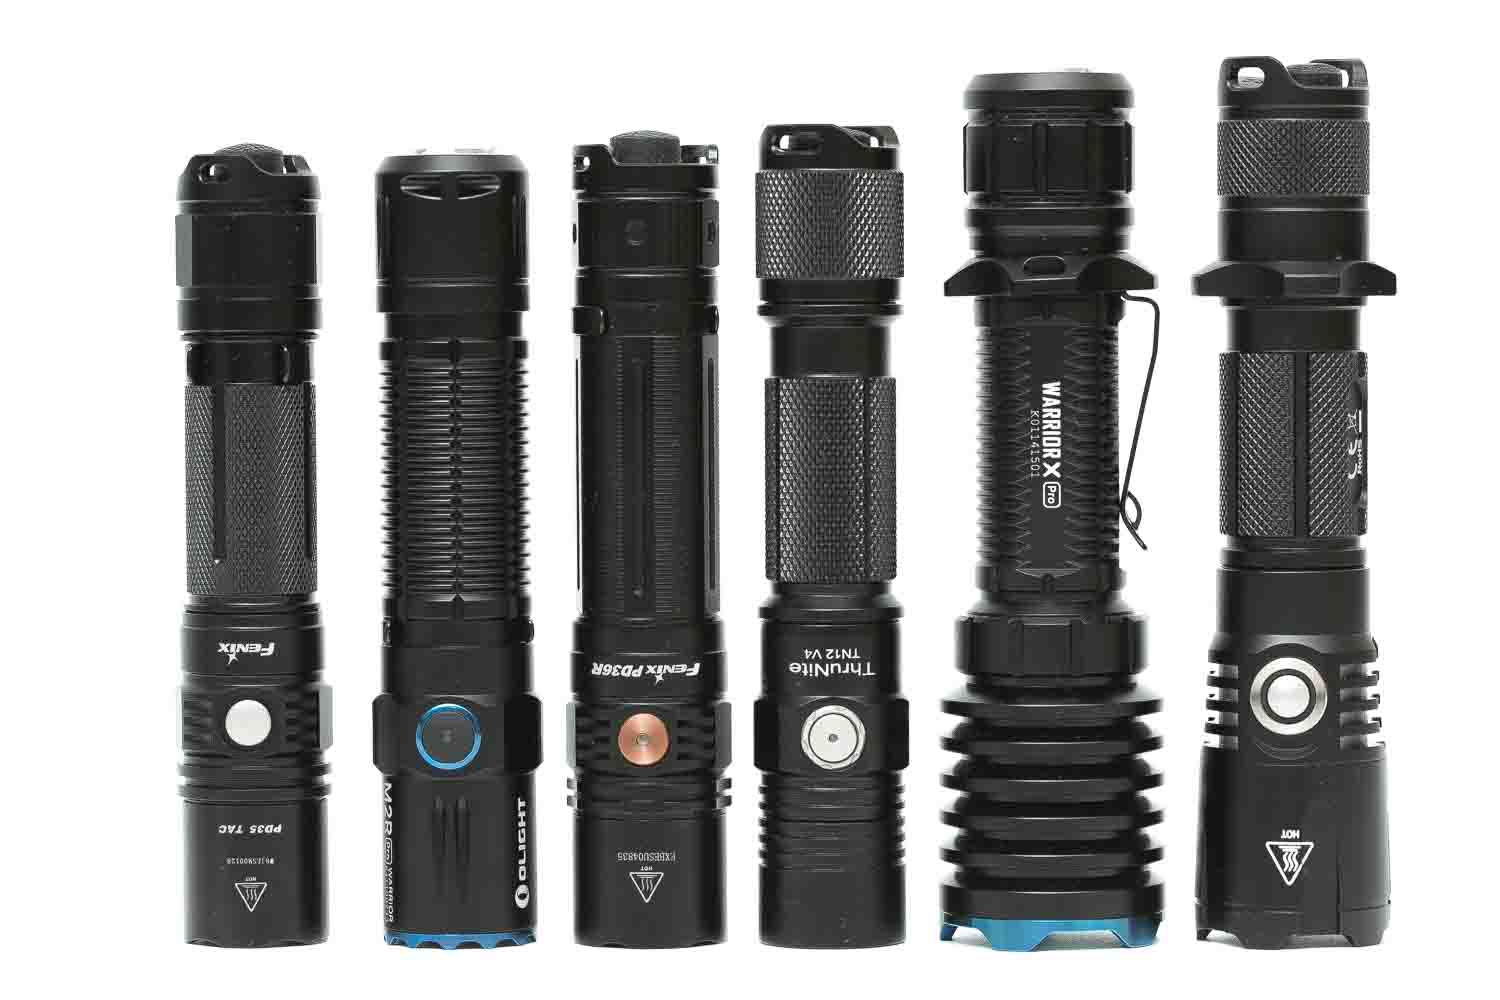 olight m2r pro warrior next to other tactical flashlights